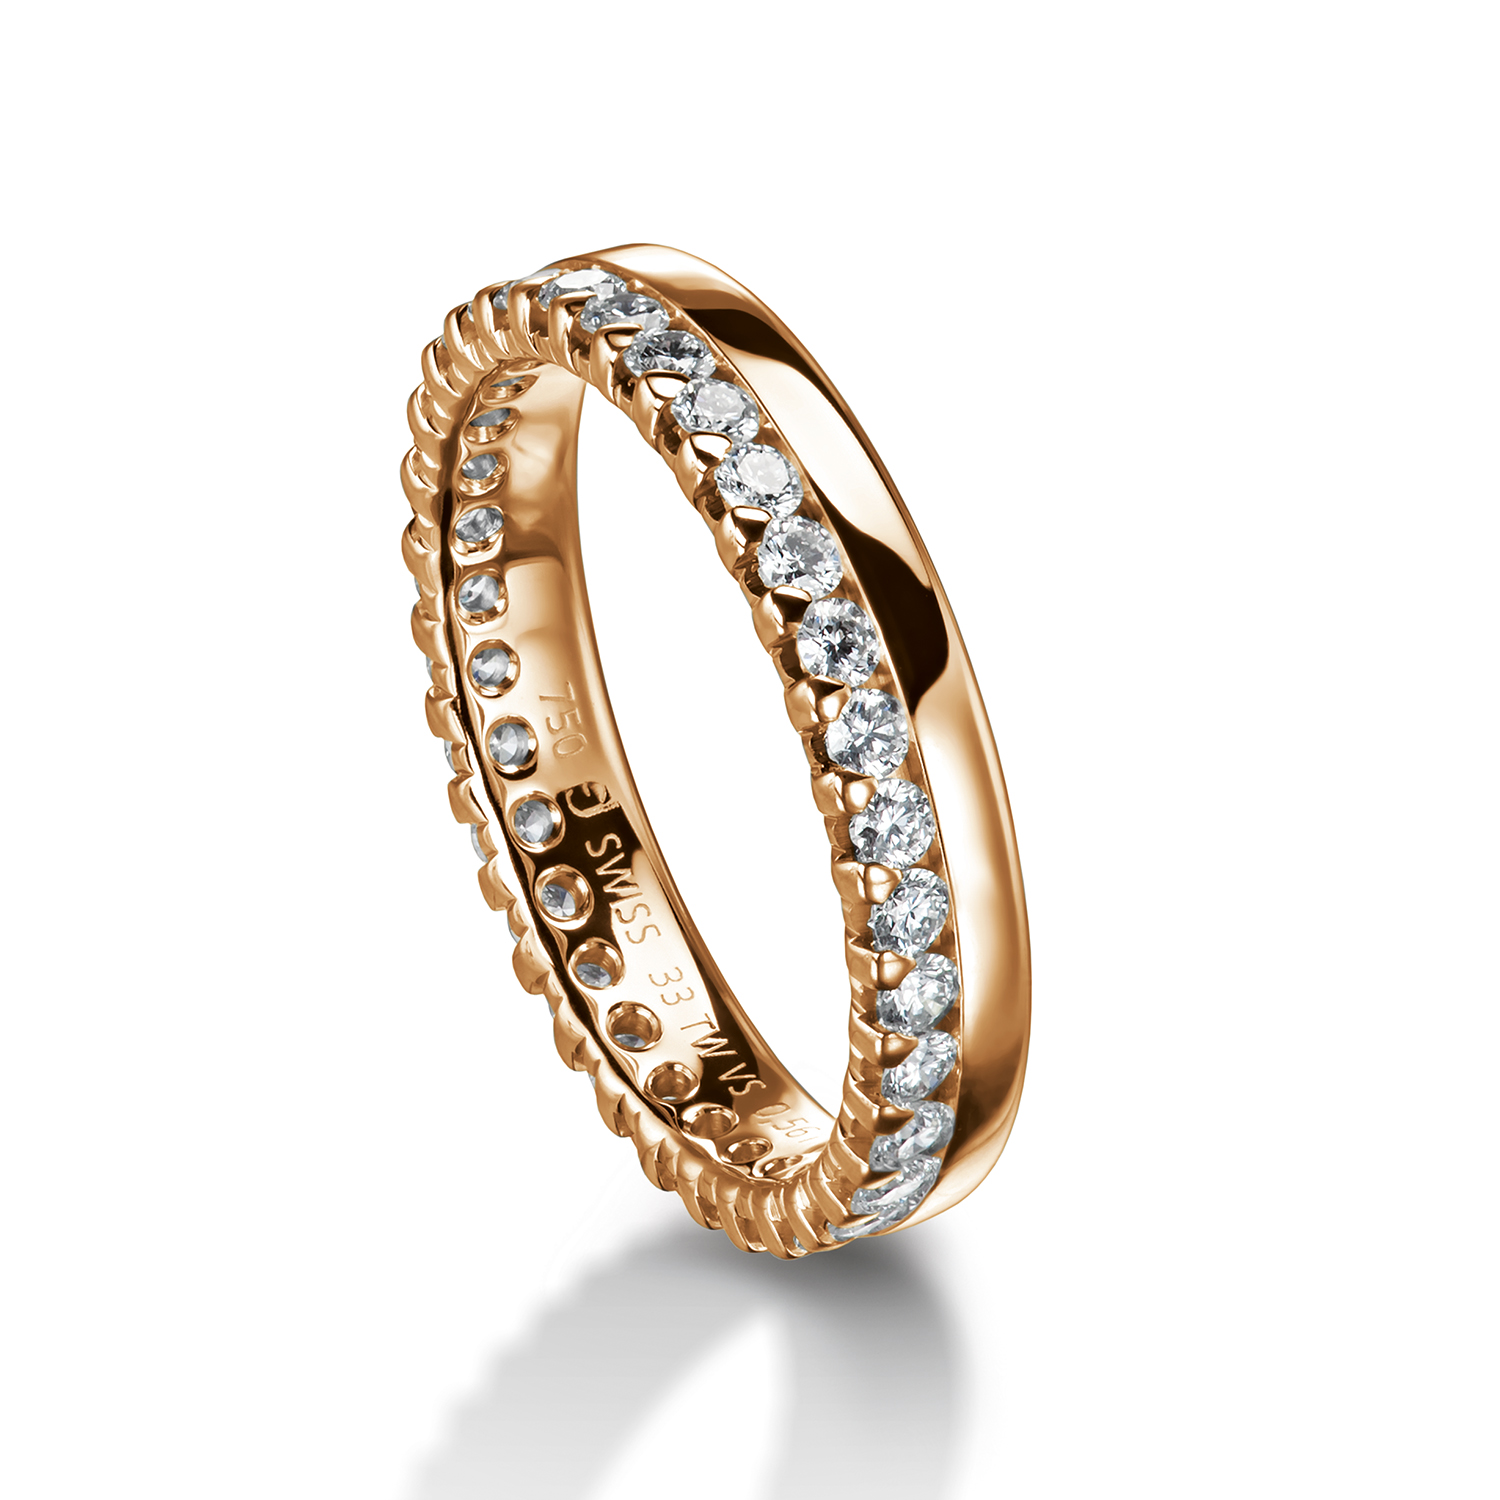 wedding bands, rings with diamonds in gold and platinum